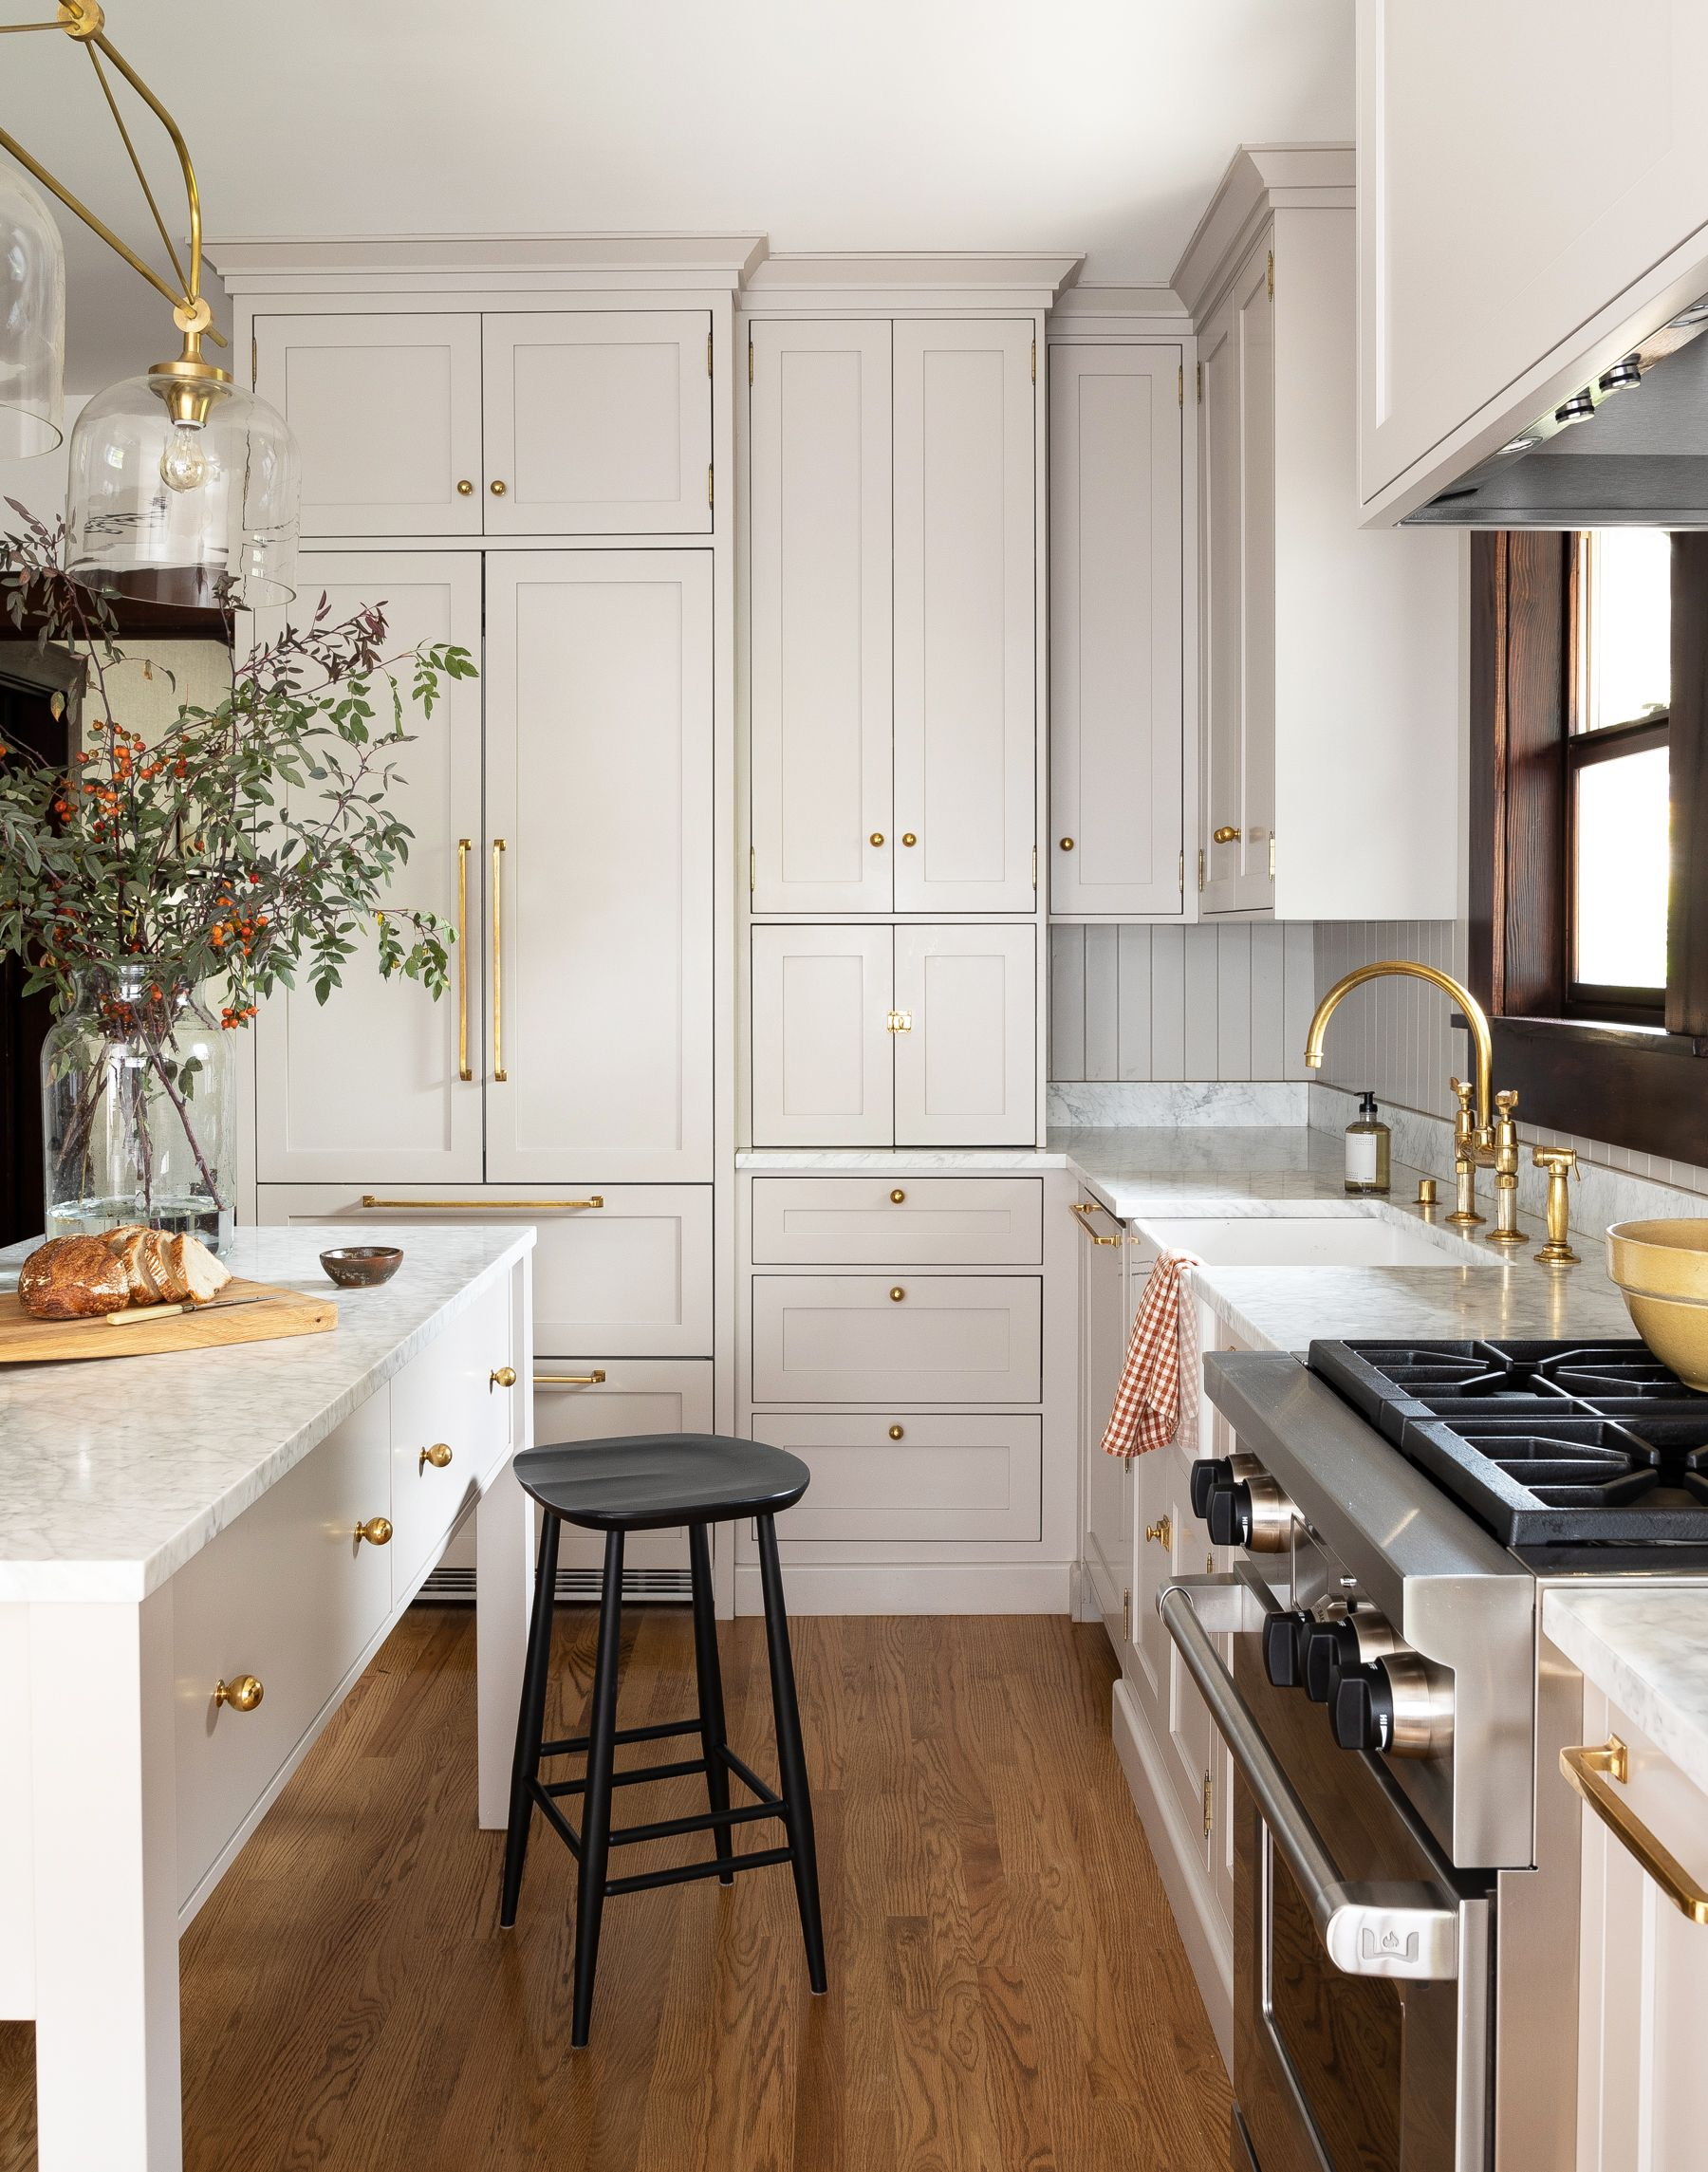 Beautiful kitchen remodel ideas on a budget